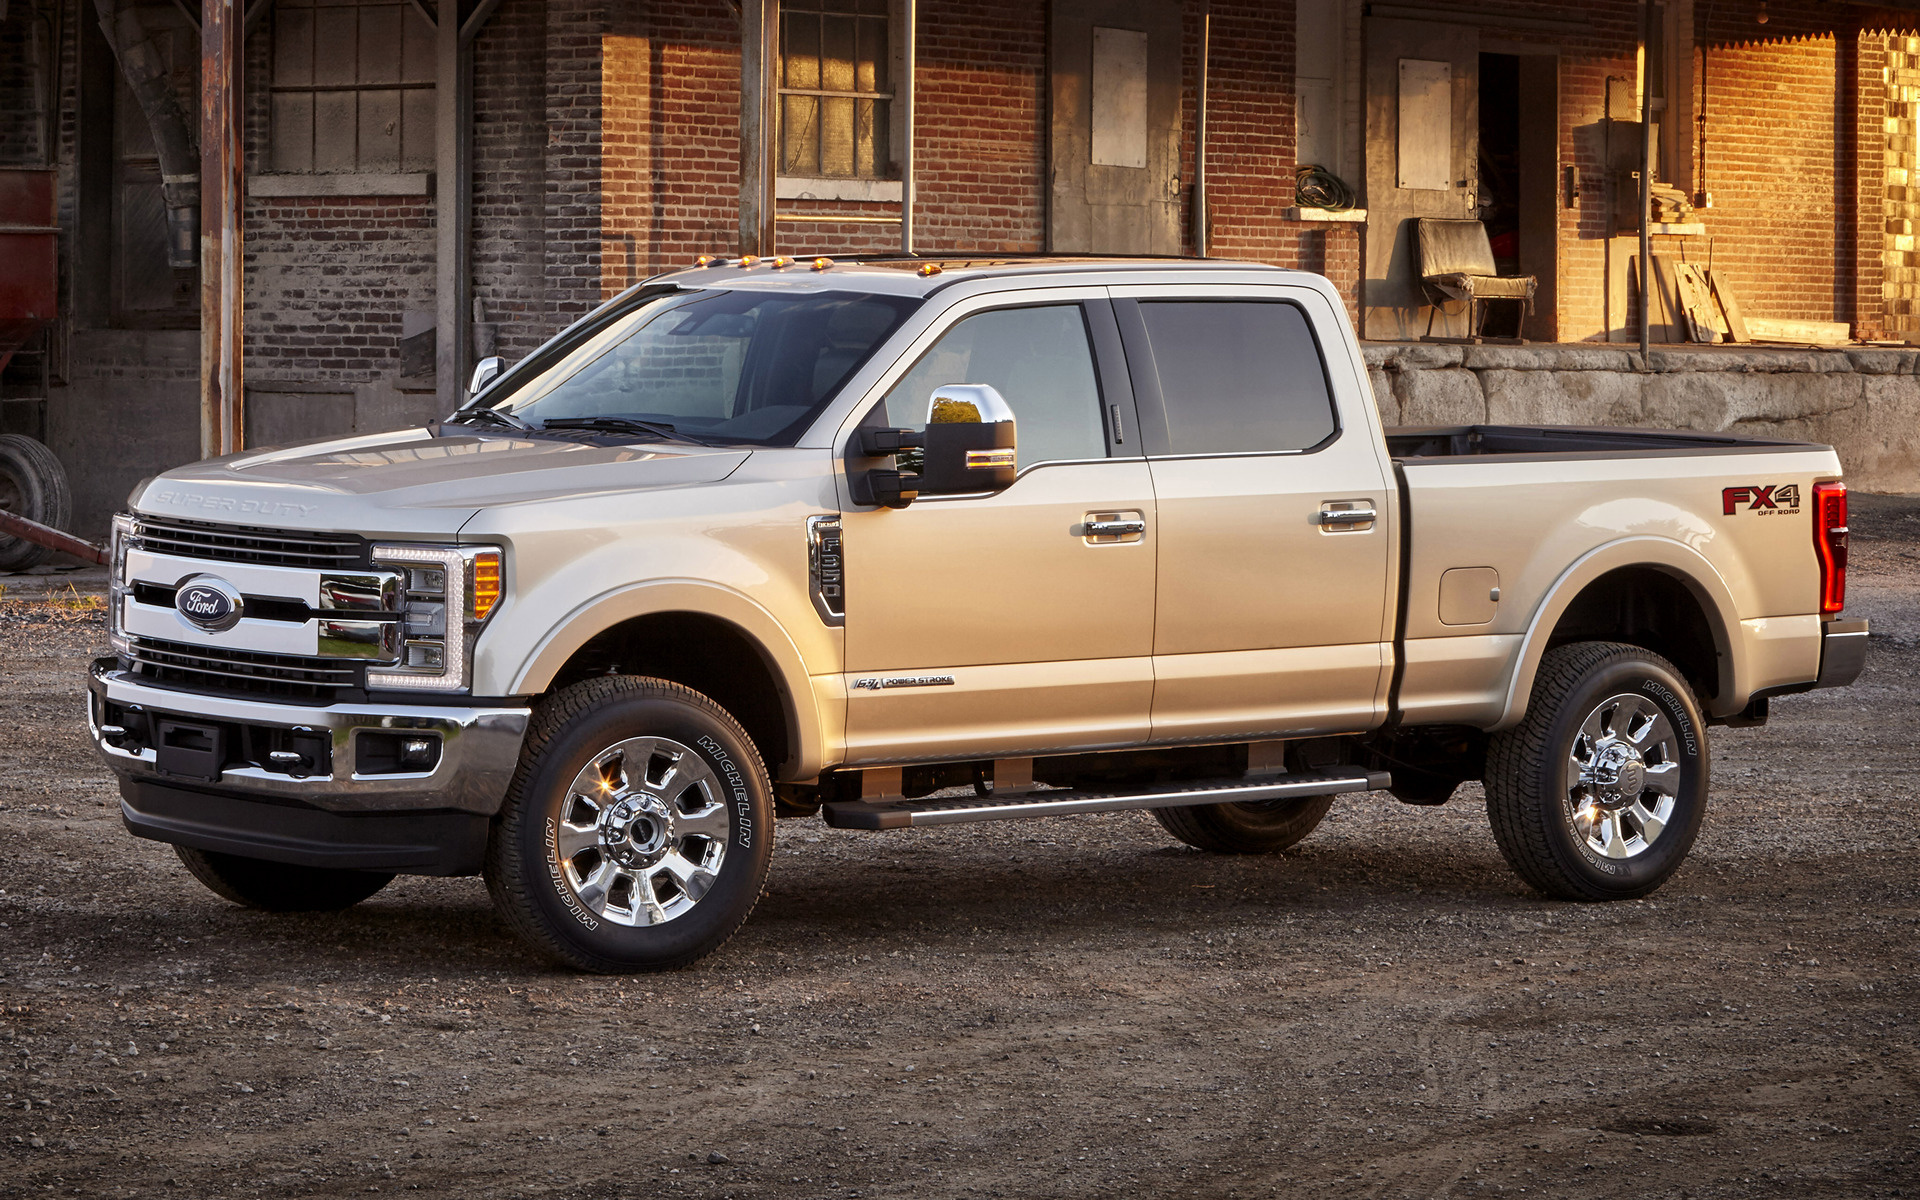 ford f 350 king ranch fx4 crew cab 2017 wallpapers and hd images car pixel. Black Bedroom Furniture Sets. Home Design Ideas